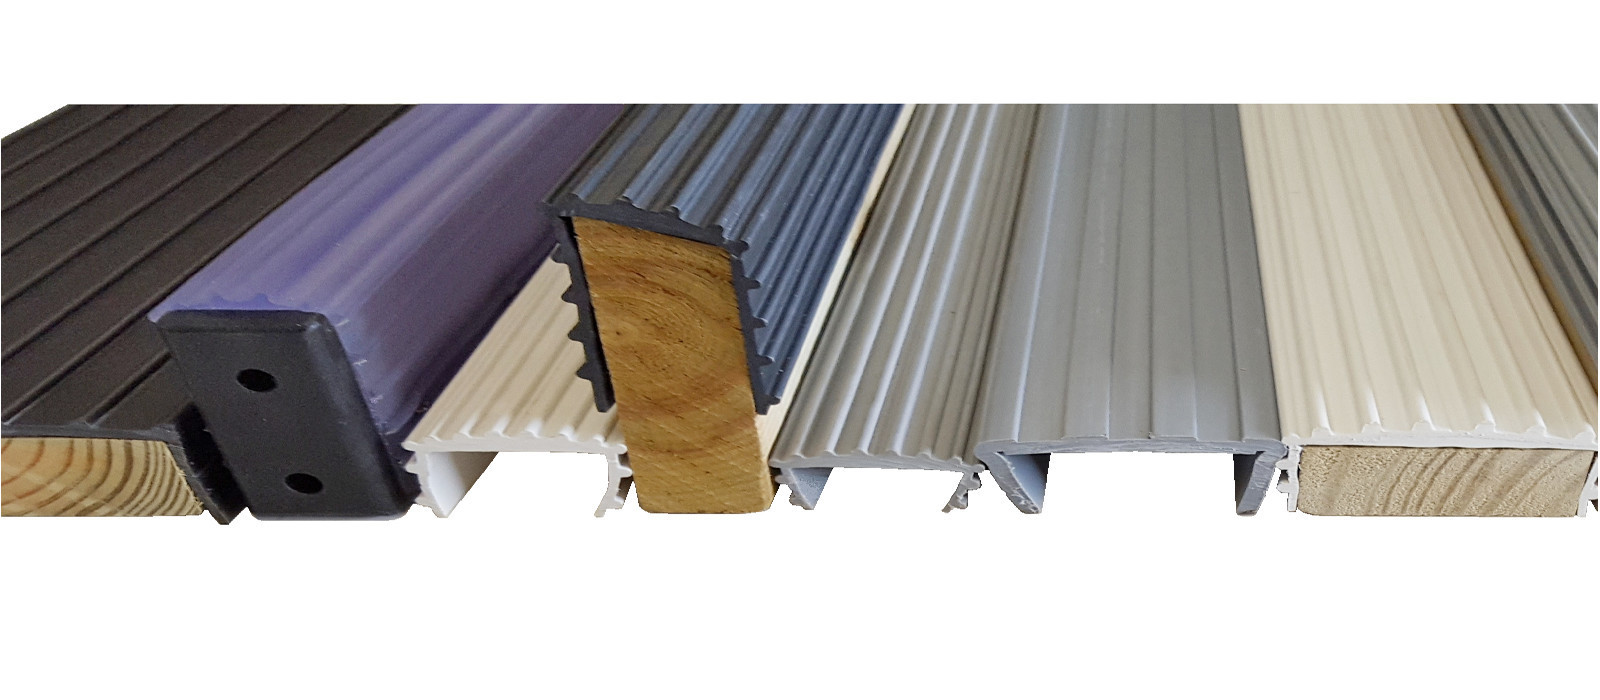 Large Bunk Covers